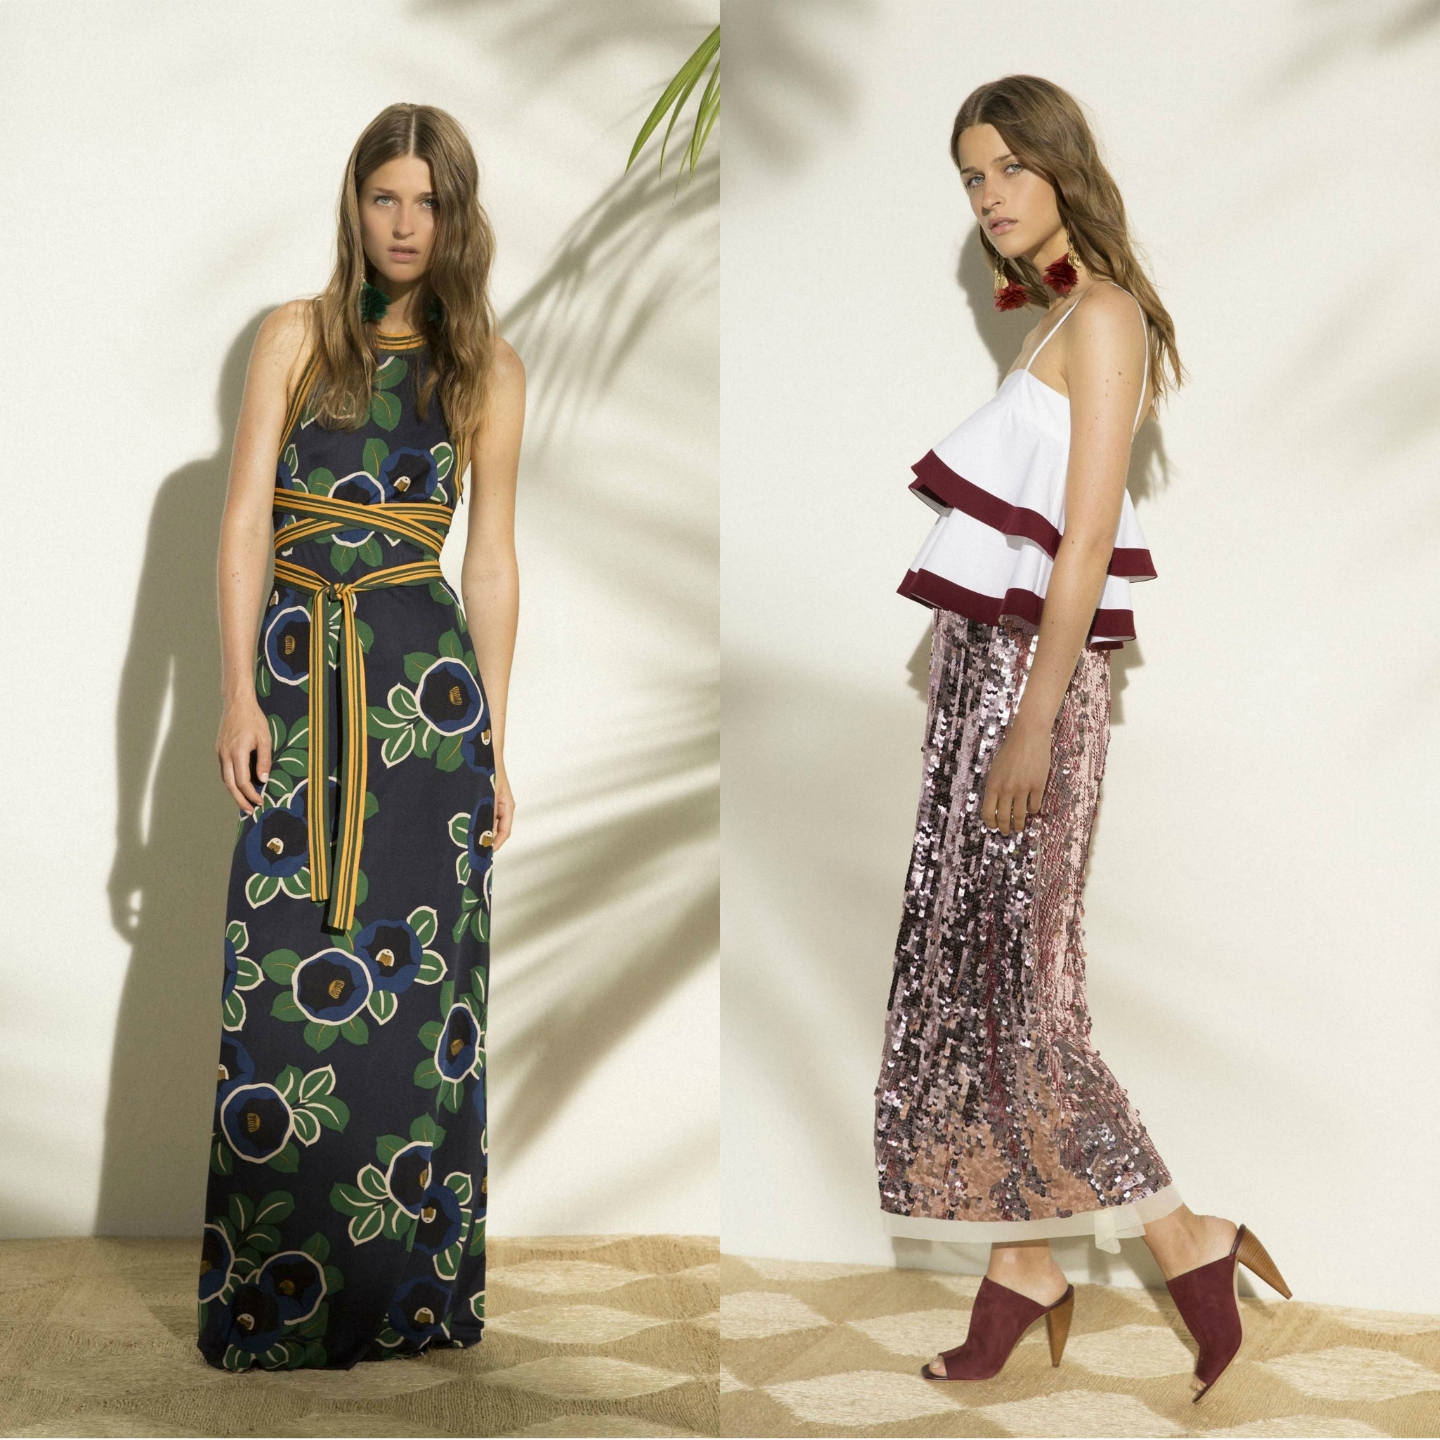 Eniwhere Fashion - Resort Collection - Primavera 2017 - Tory Burch